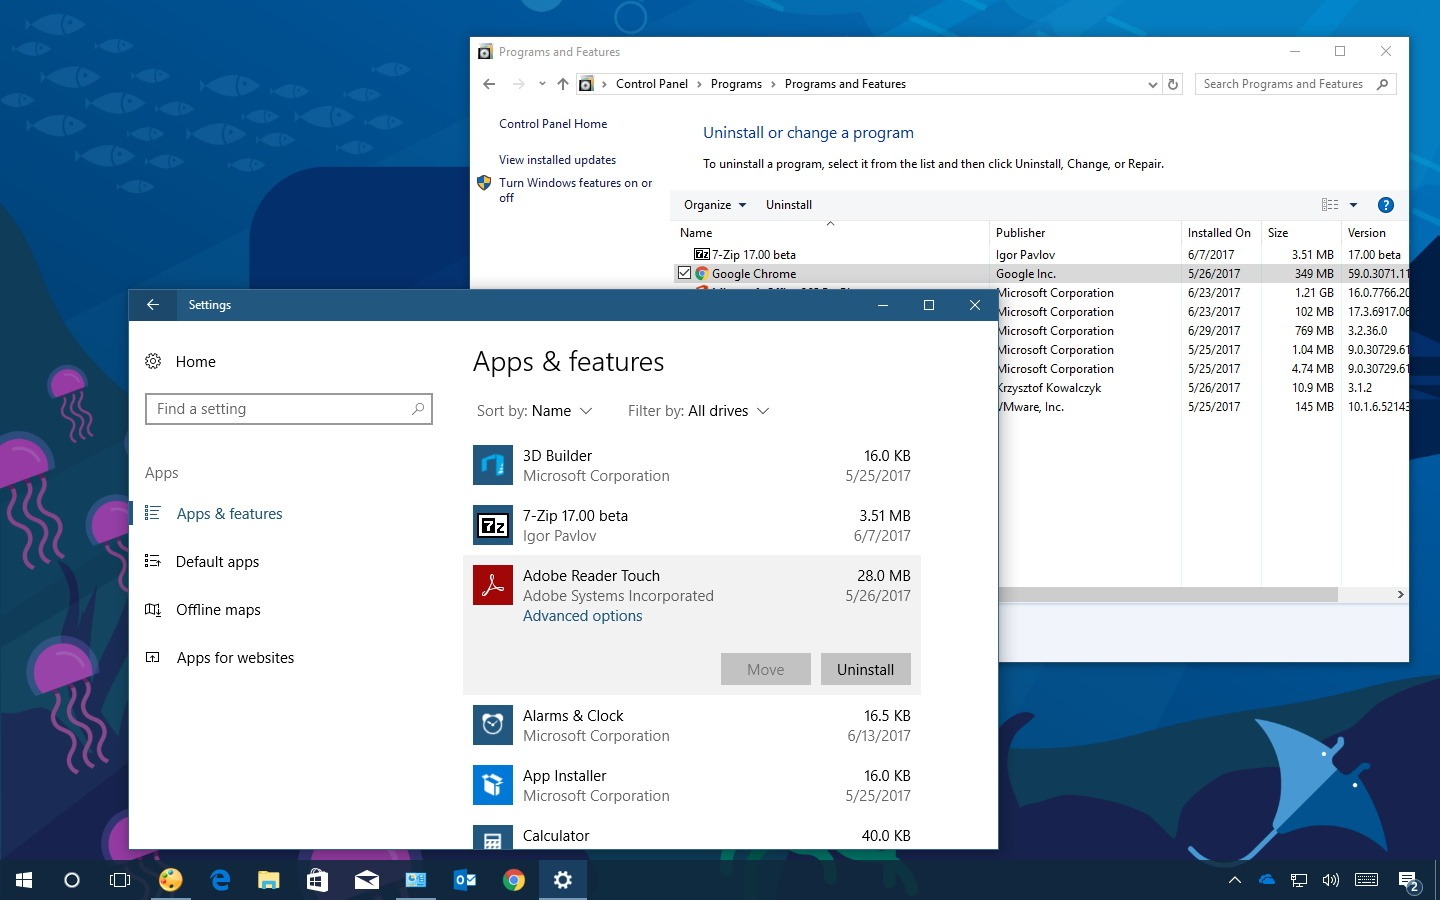 Uninstall incompatible apps on Windows 10